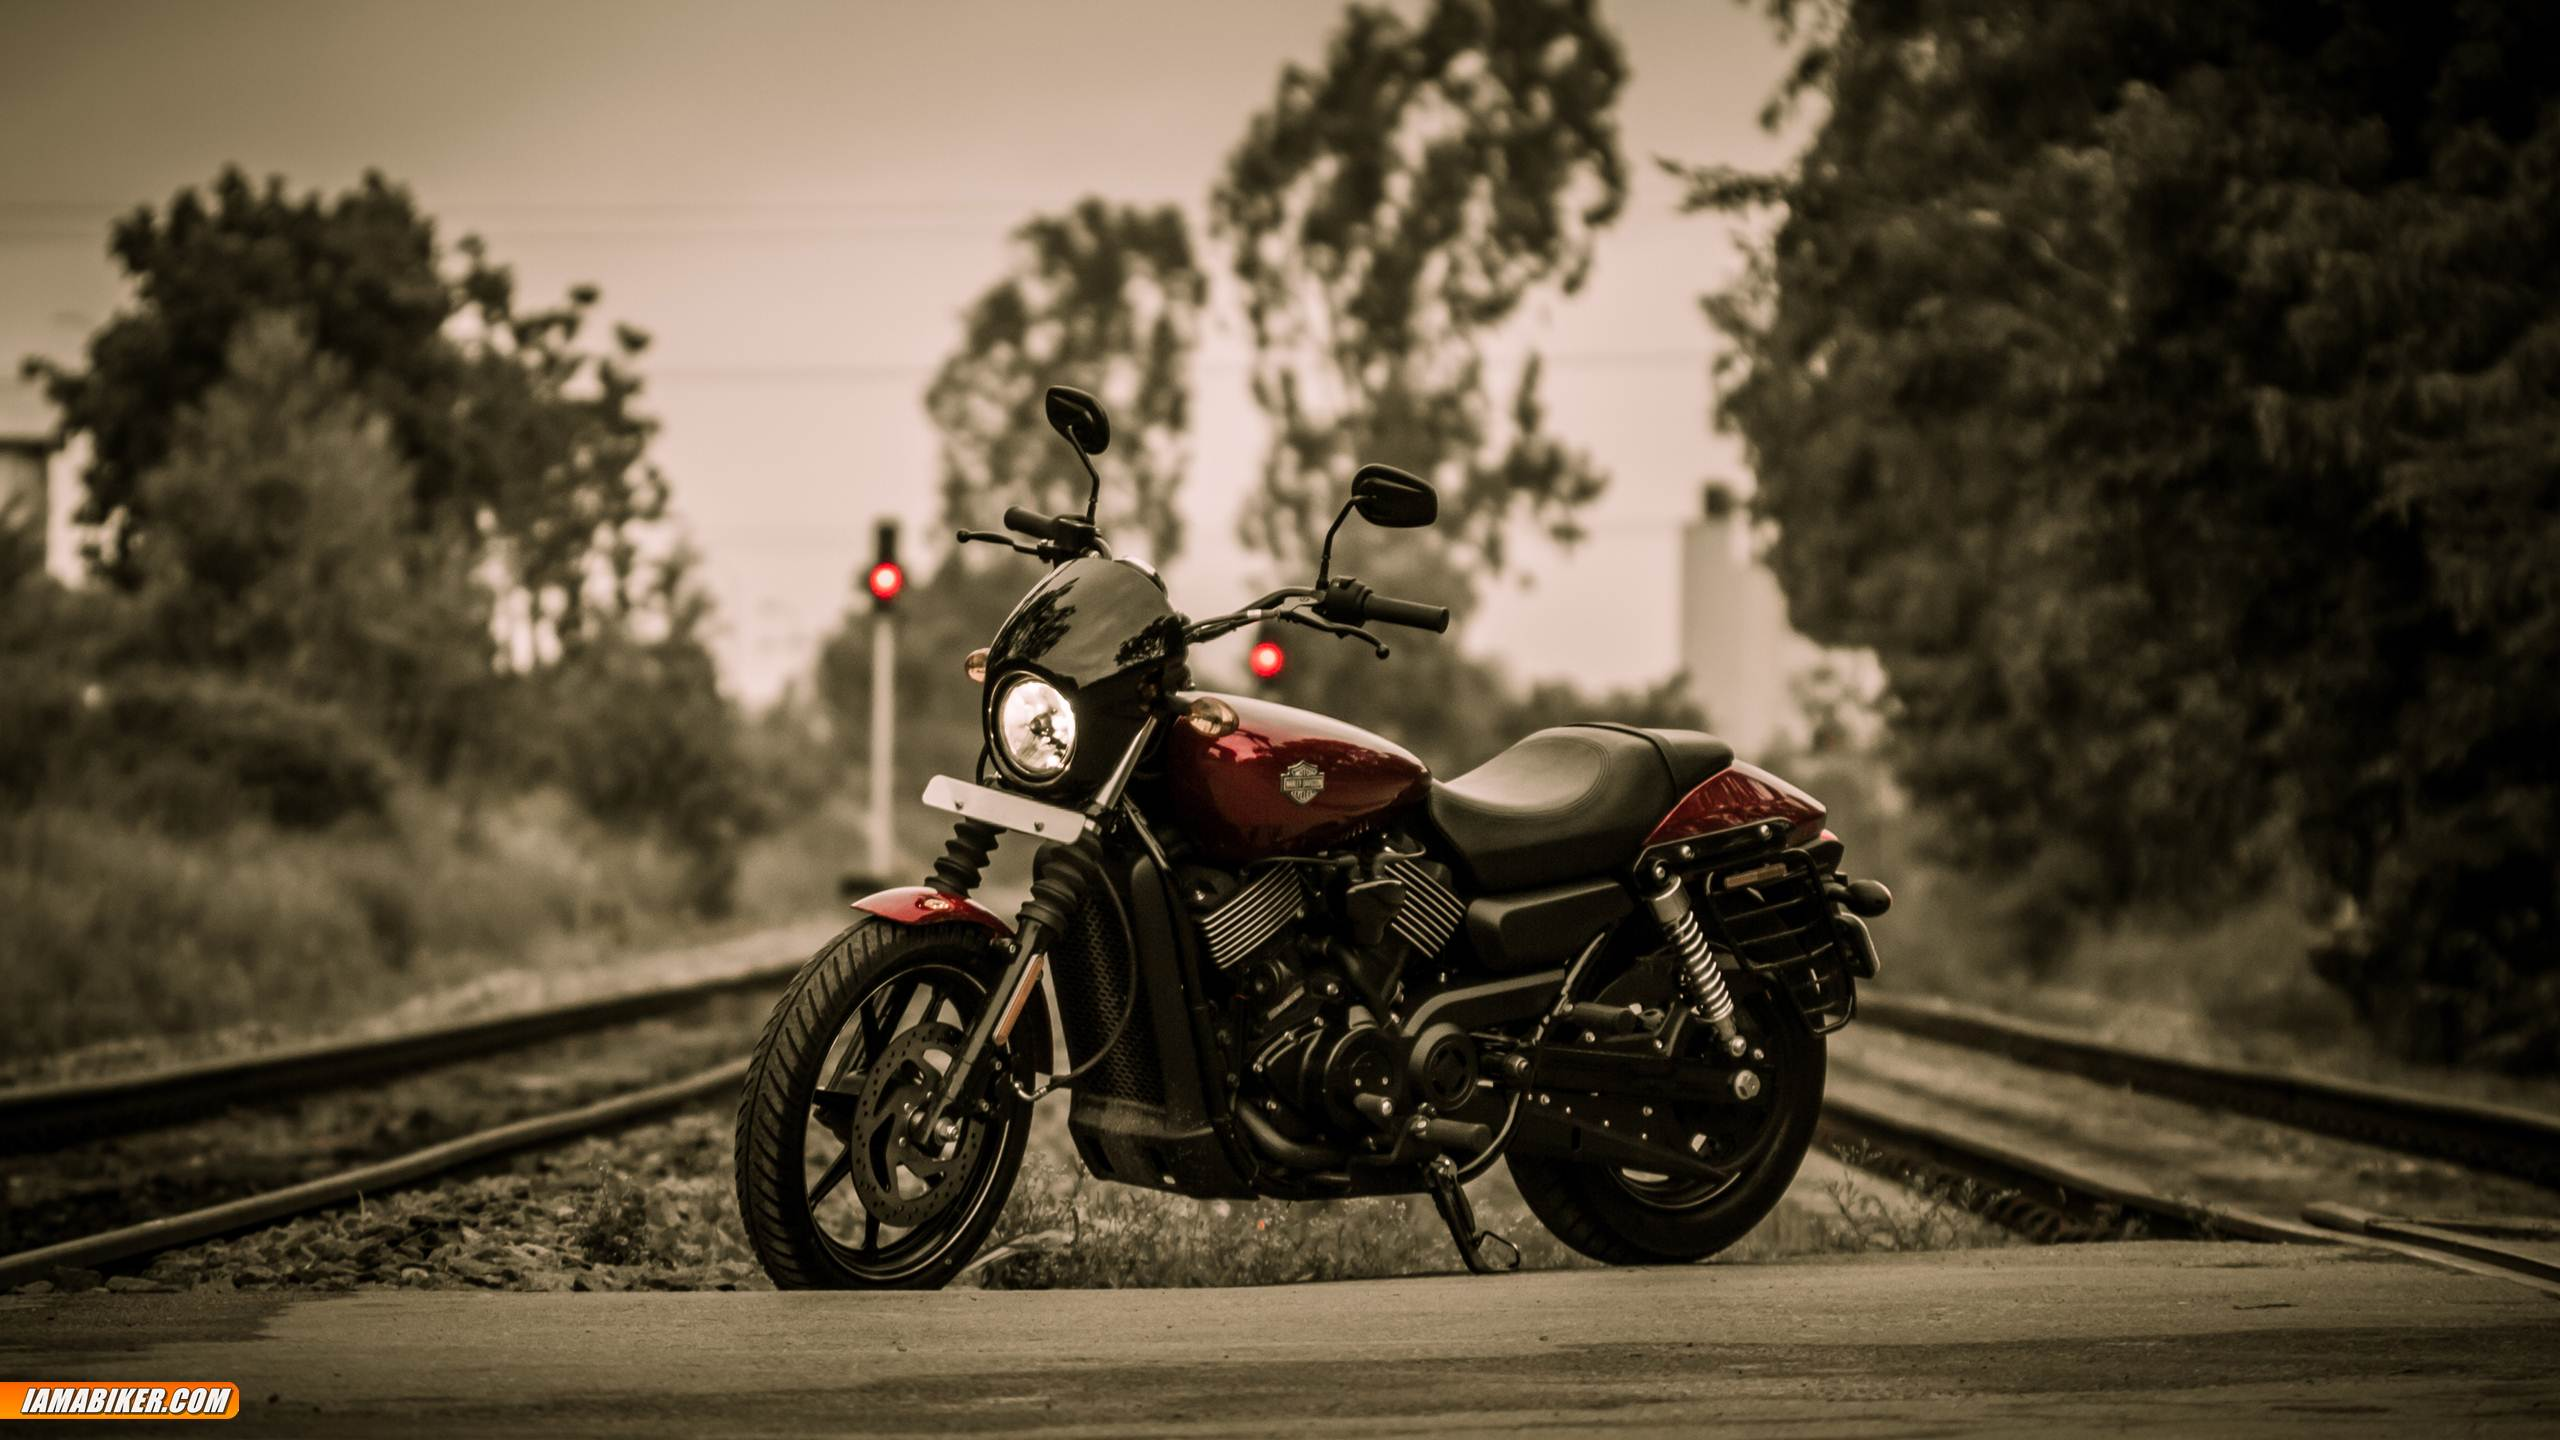 harley davidson street 750 - photo #36